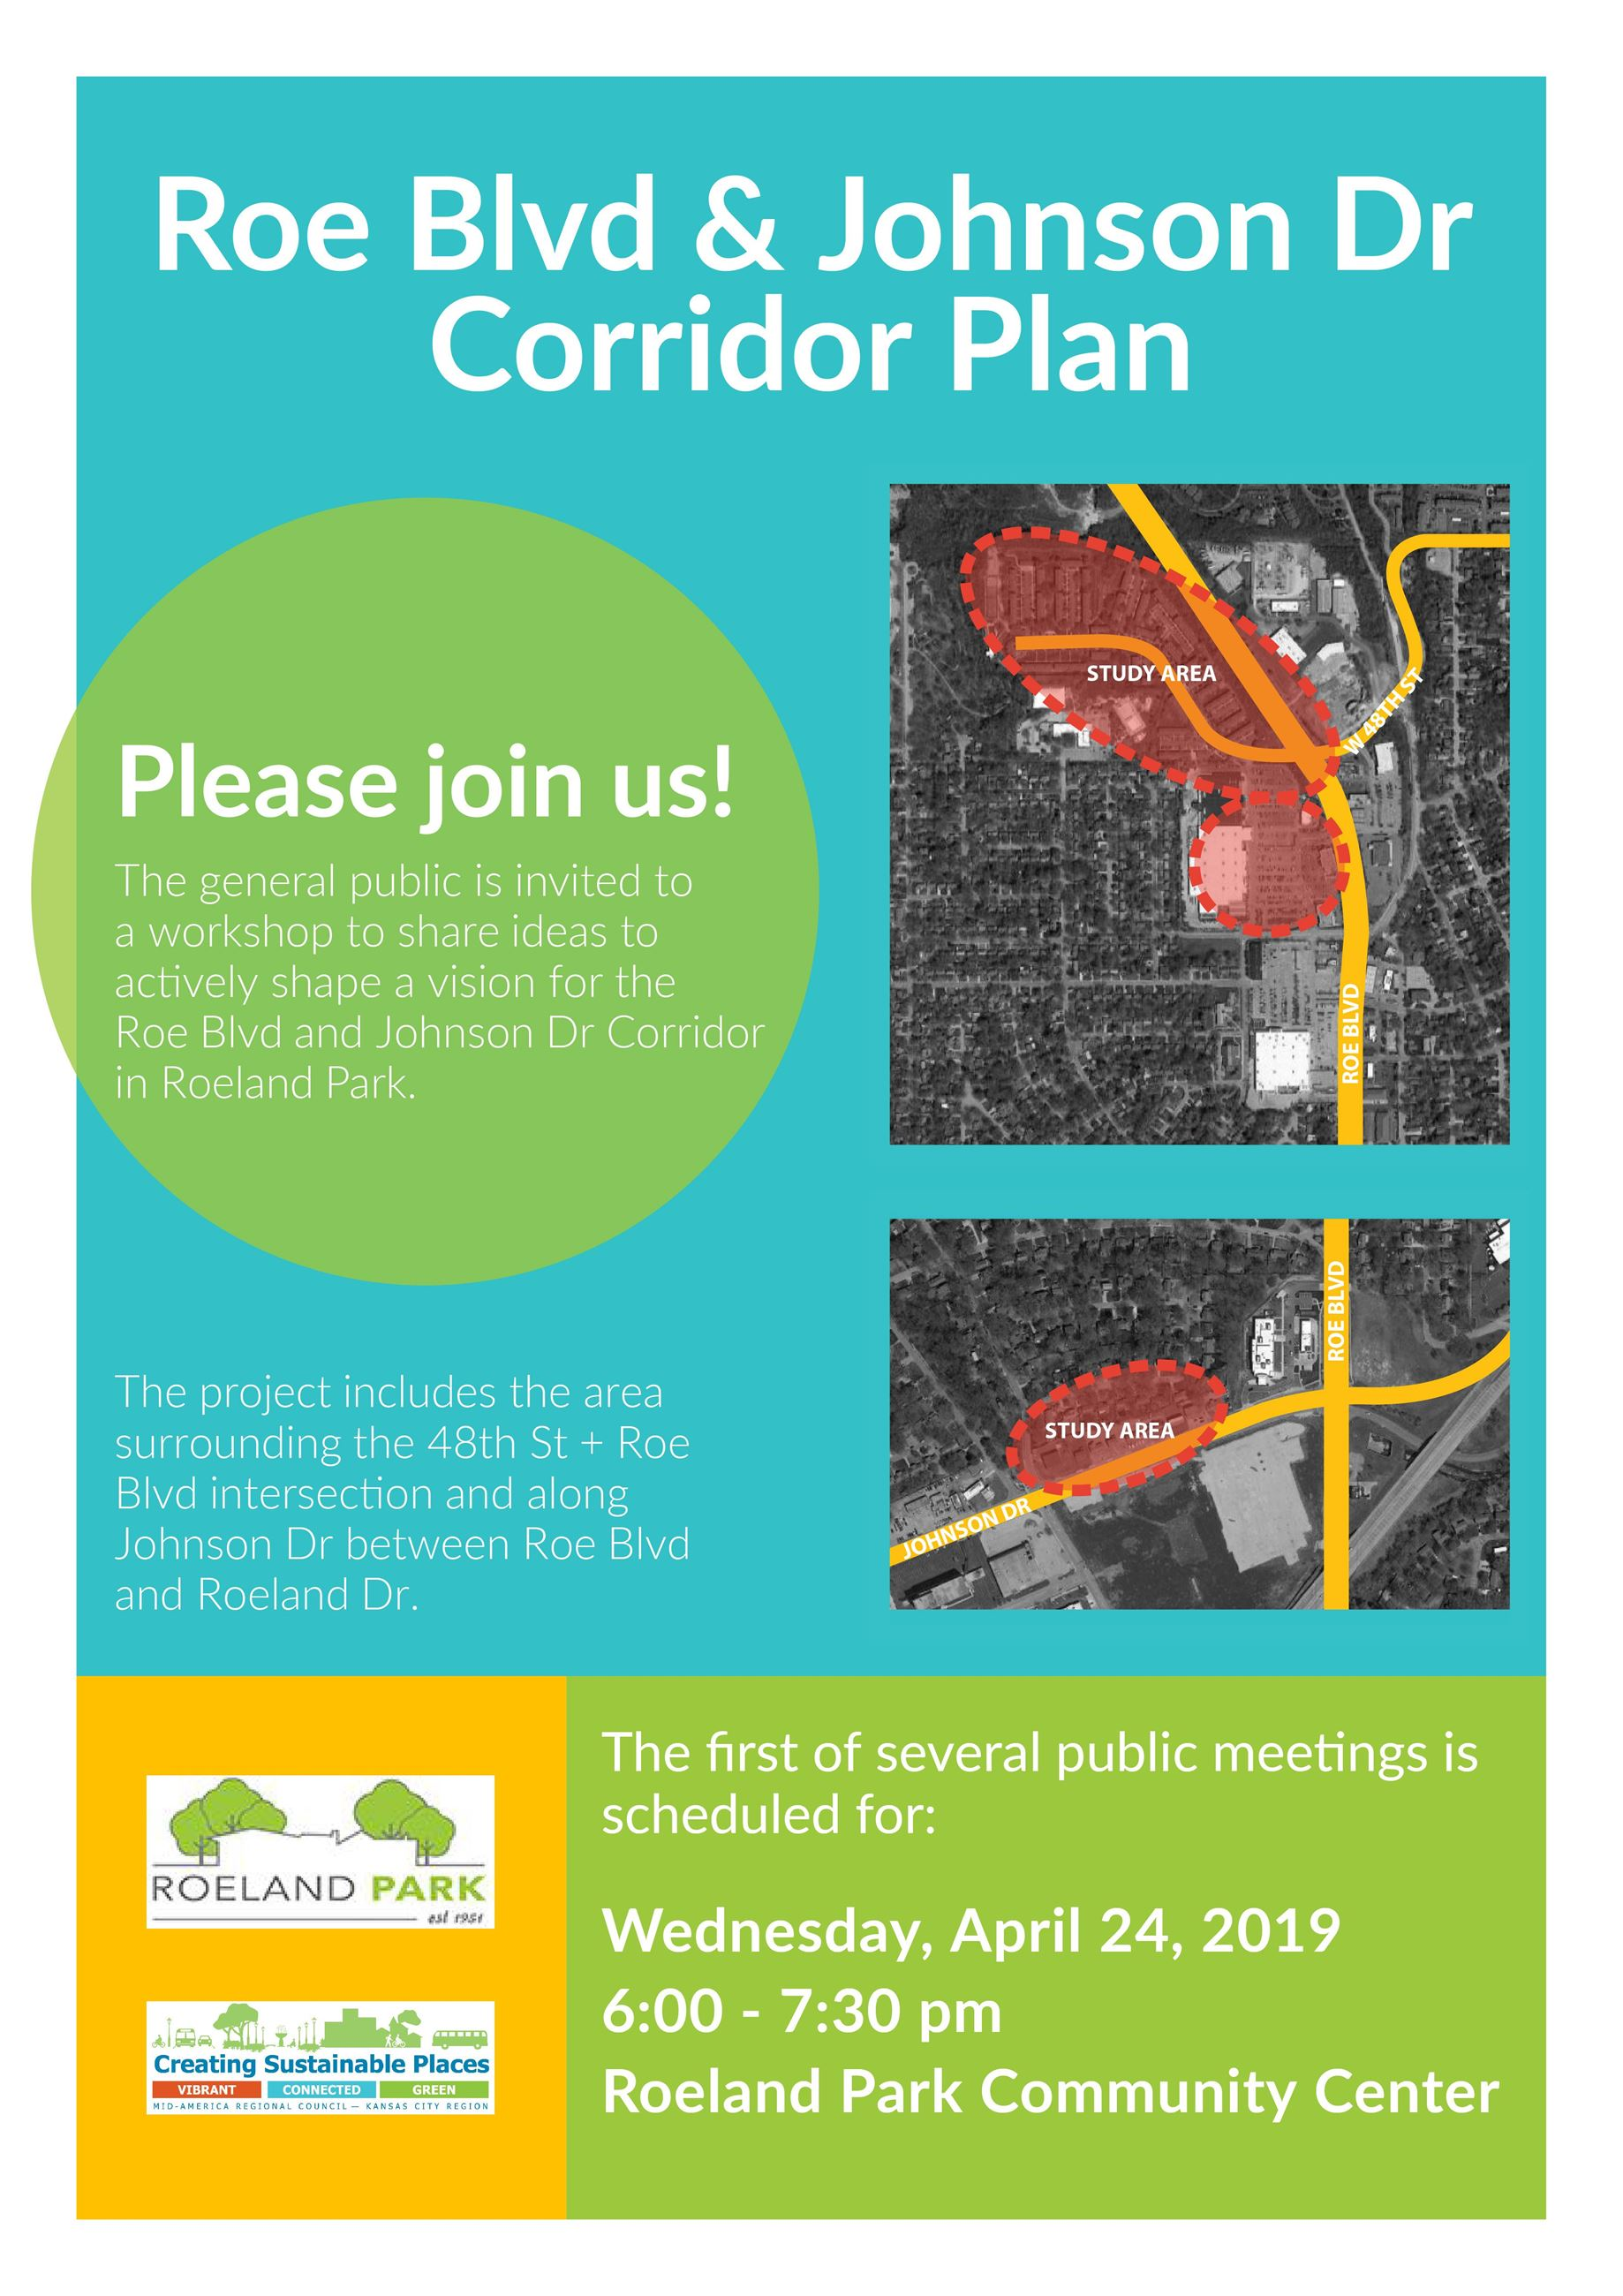 Roe Blvd and Johnson Dr Public Meeting Roeland Park PM1 Flyer_DRAFT